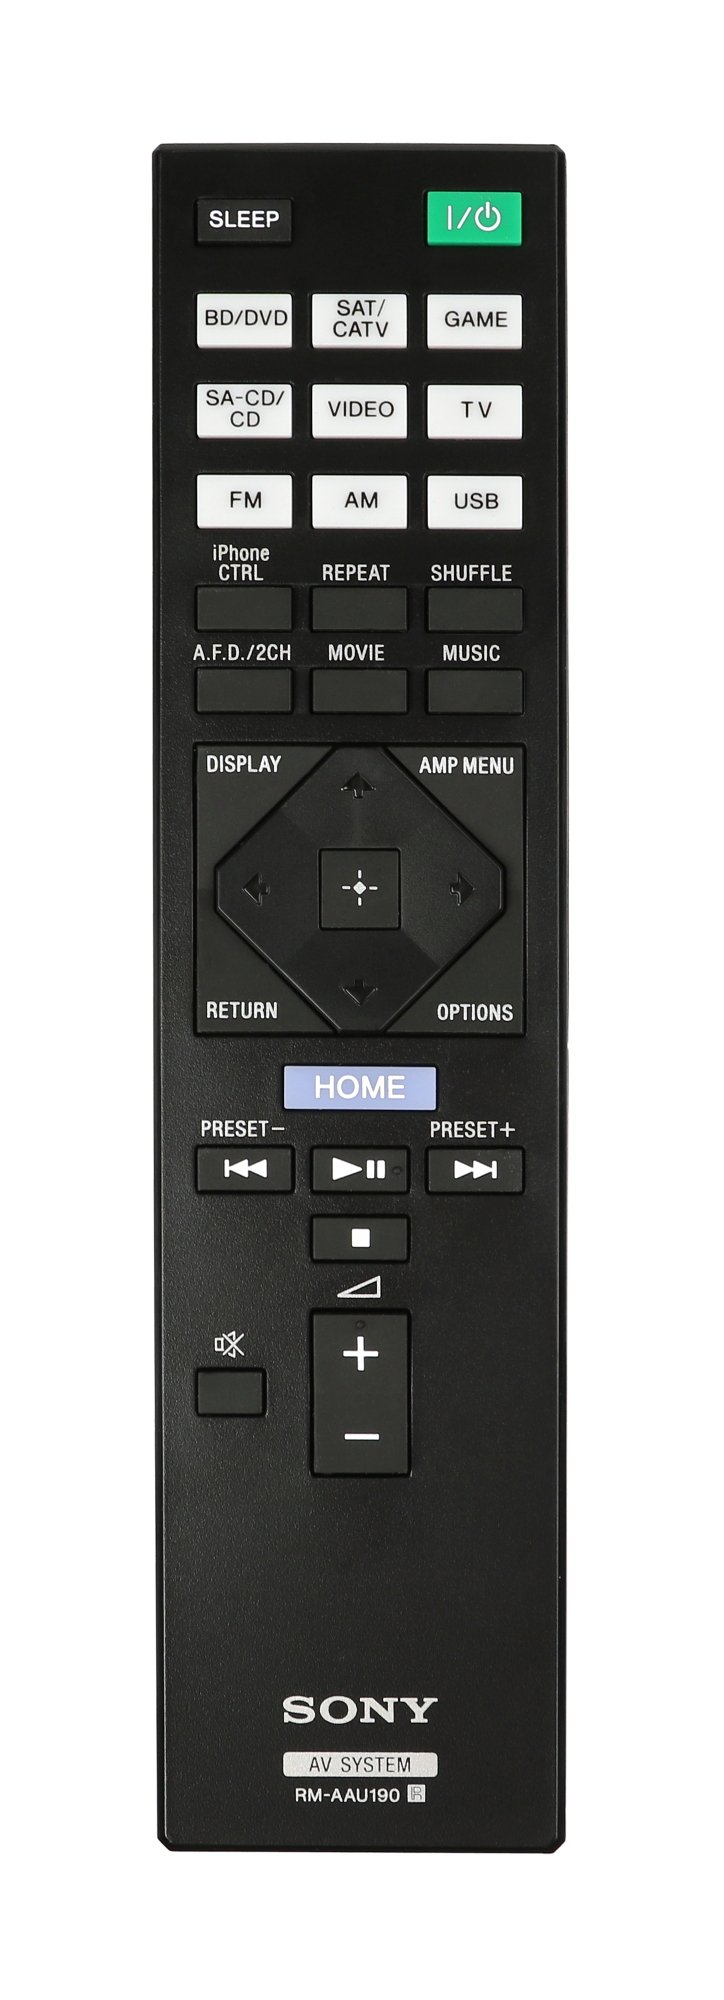 Remote for STR-DH750 and STR-DH550